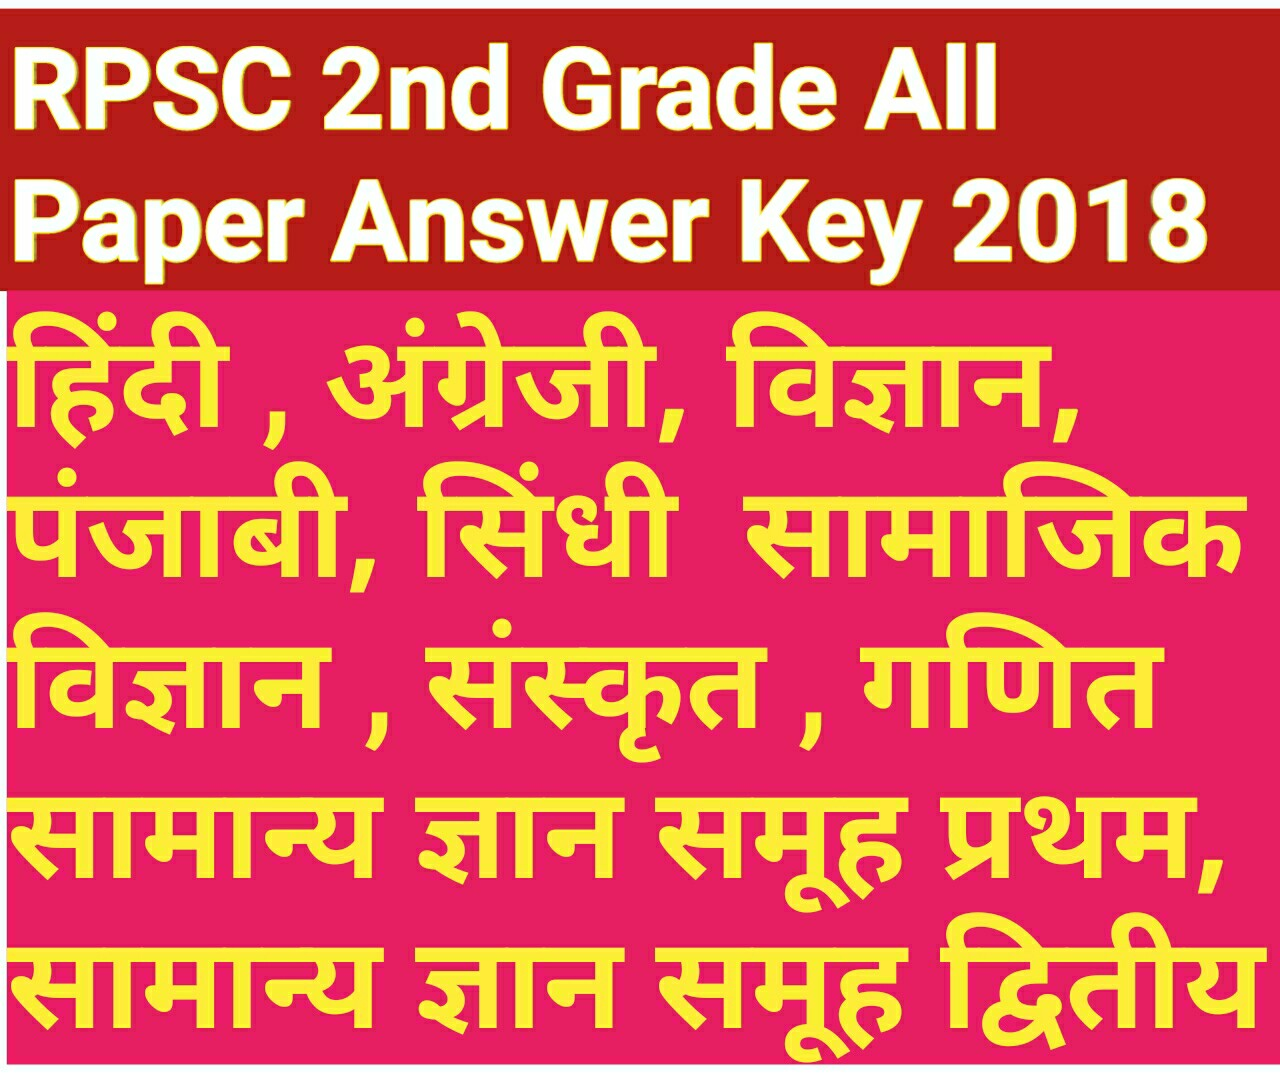 G.K Group 1st 👉 Available  G.K Group 2nd 👉 Available  Hindi 👉 Download Science 👉 Check  Mathematics 👉 Download Urdu 👉 Download  Sindhi 👉 File Available Social Science 👉 Download Sanskrit 👉 Download English 👉 Download Punjabi 👉